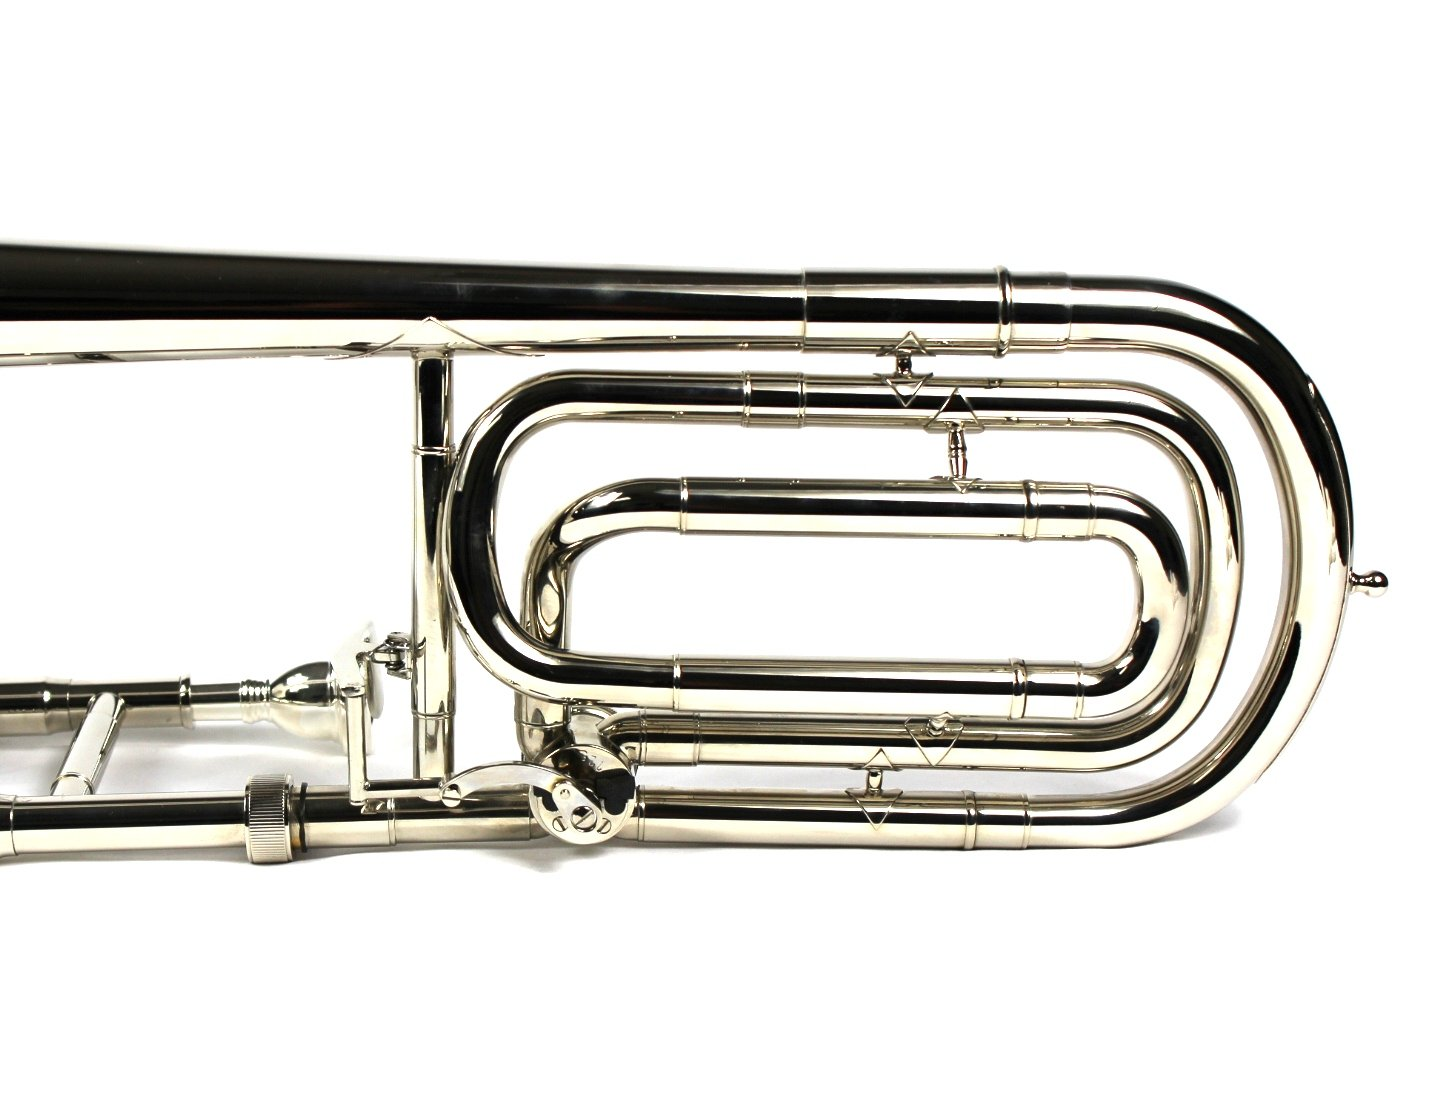 Brand New Bb/F Bass Trombone w/ Case and Mouthpiece- Nickel Plated Finish by Moz (Image #7)